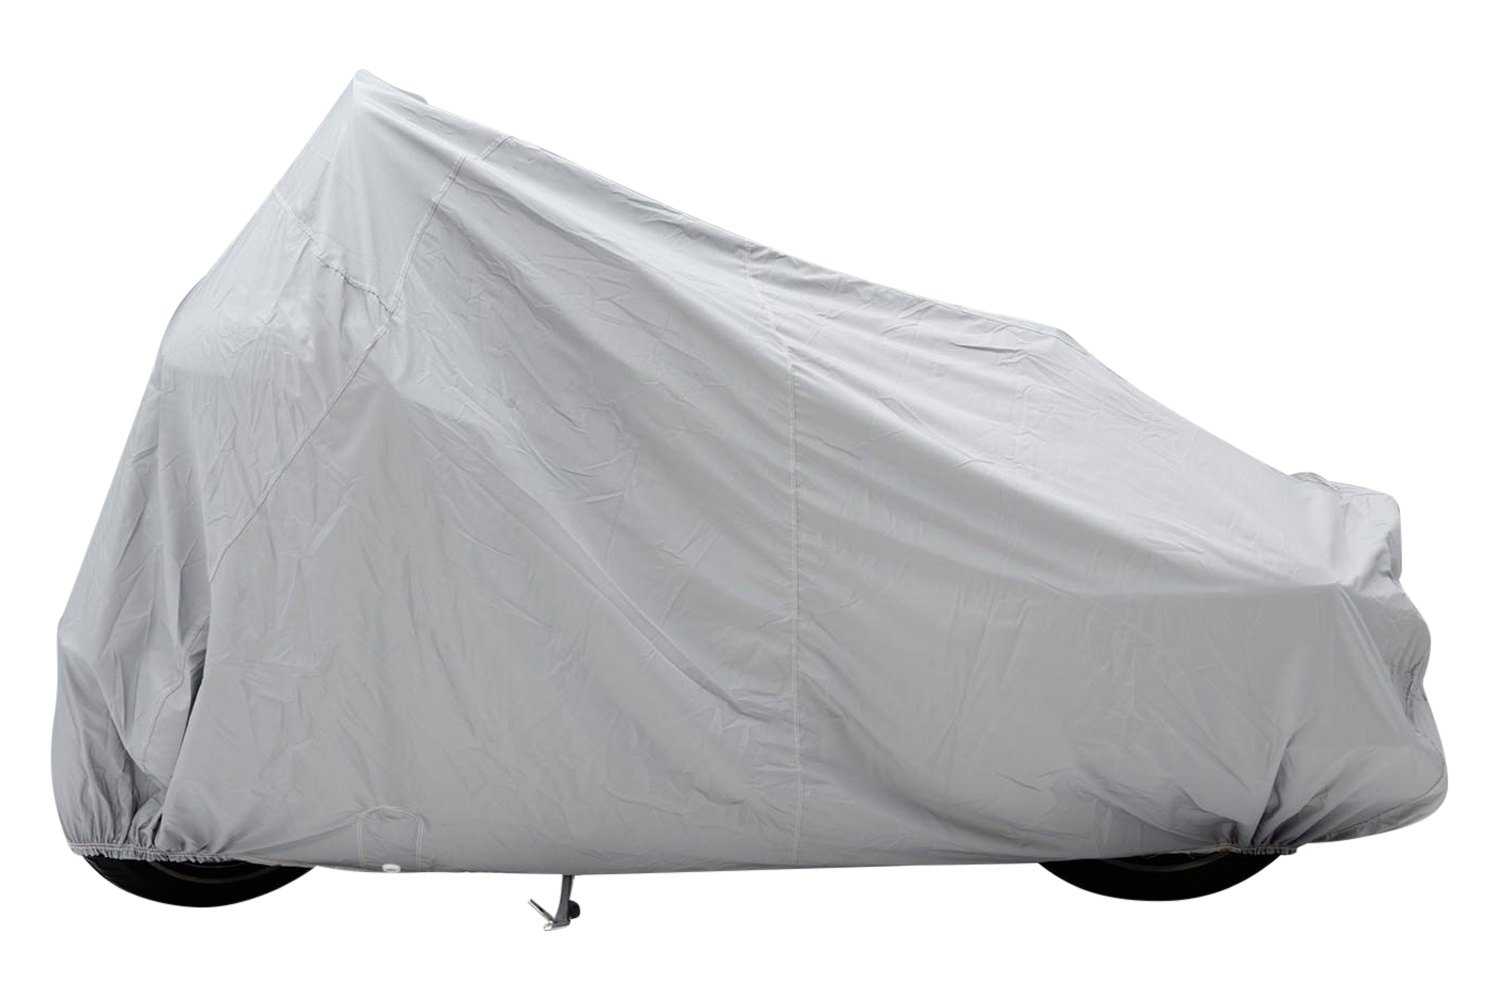 Harley Davidson Covers >> Covercraft Pack Lite Custom Fit Harley Davidson Motorcycle Cover